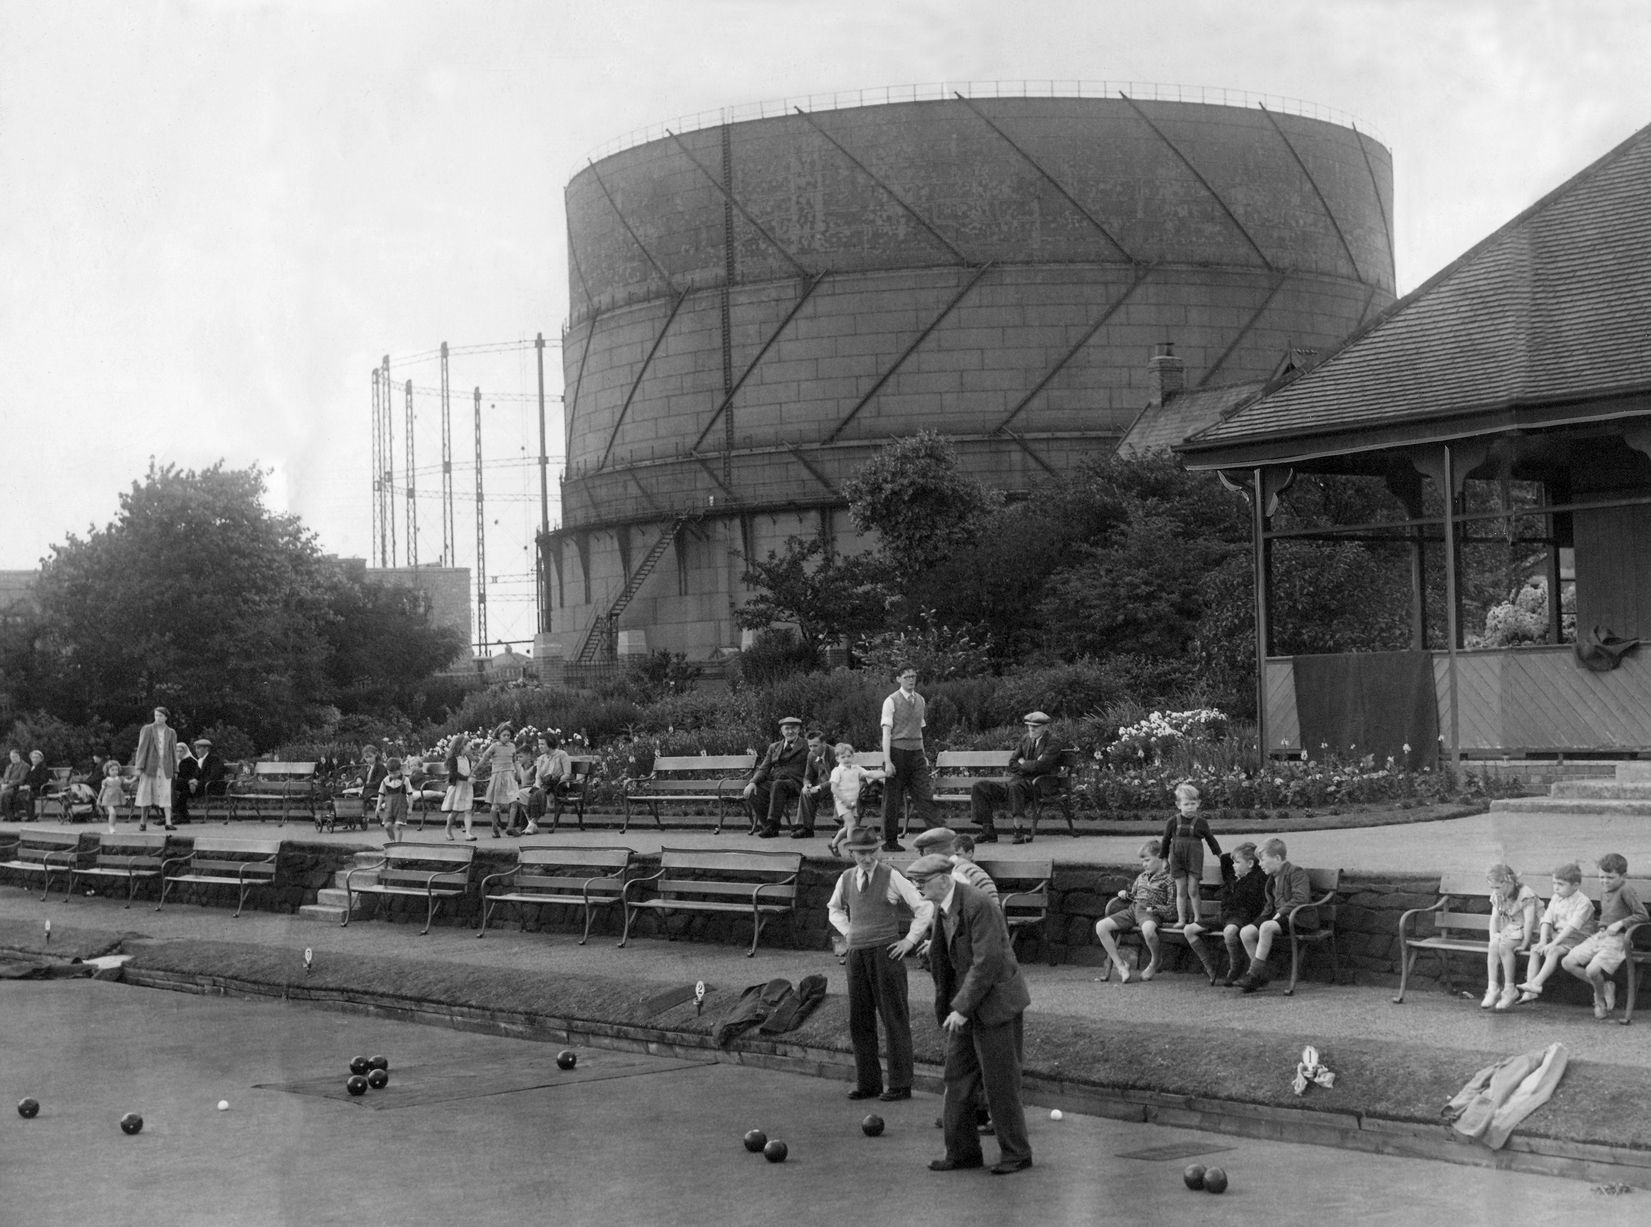 A summer scene at Howdon Park with men playing bowls and children looking on. But behind them, the gas holder rears up like a monstrous monument to an age of ugliness